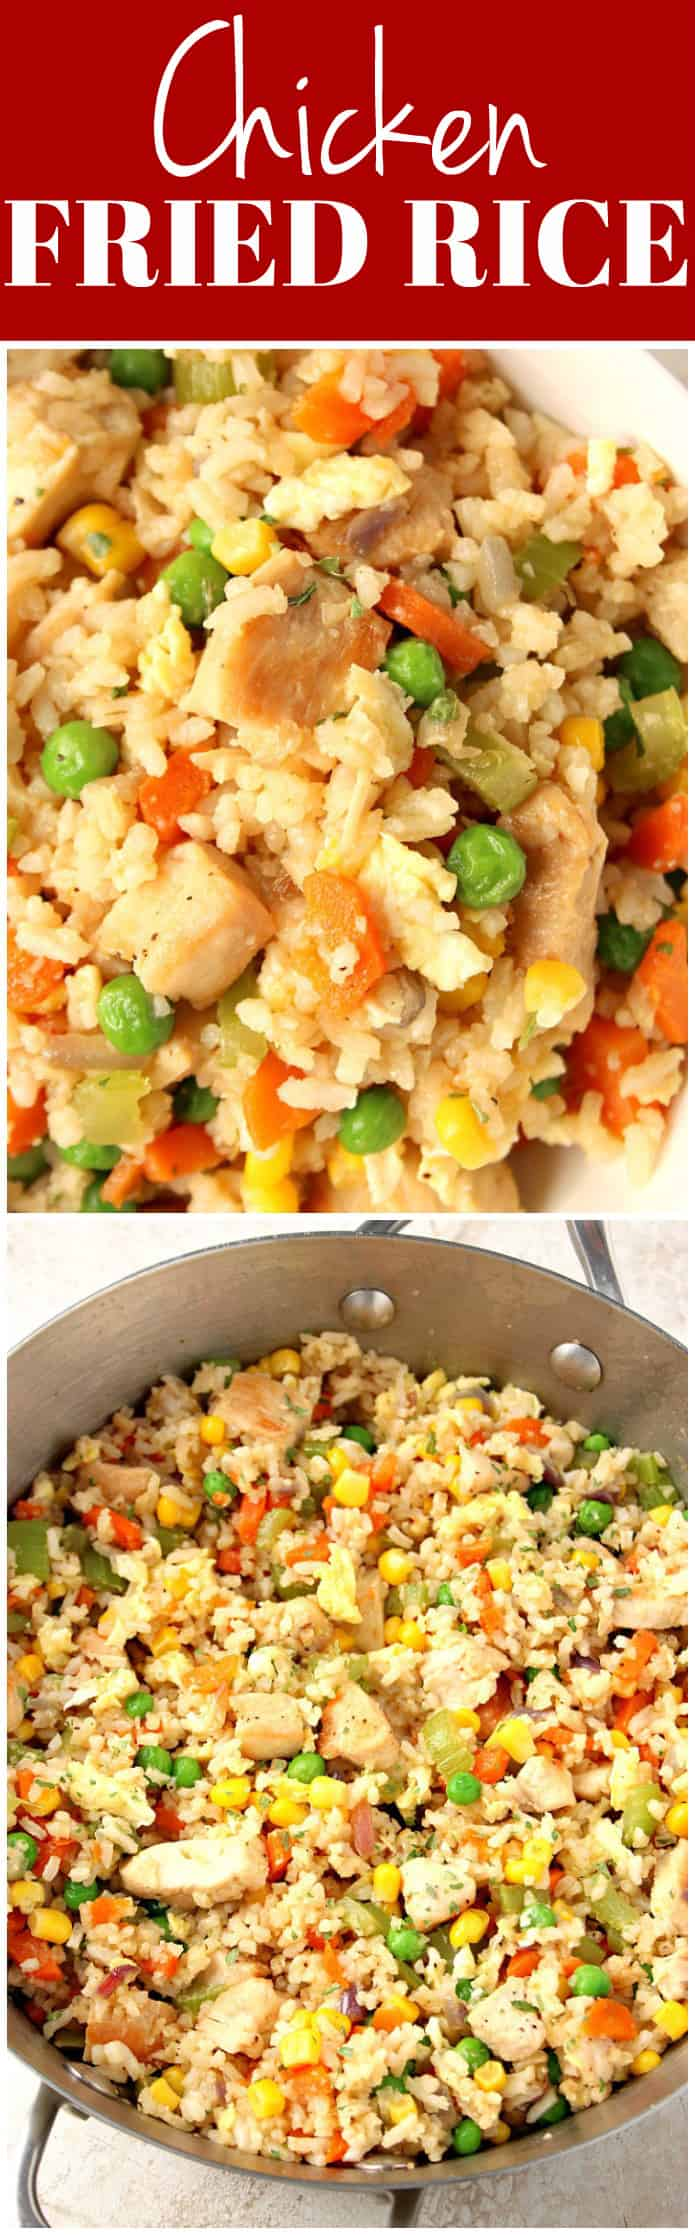 chicken fried rice recipe long1 Chicken Fried Rice Recipe